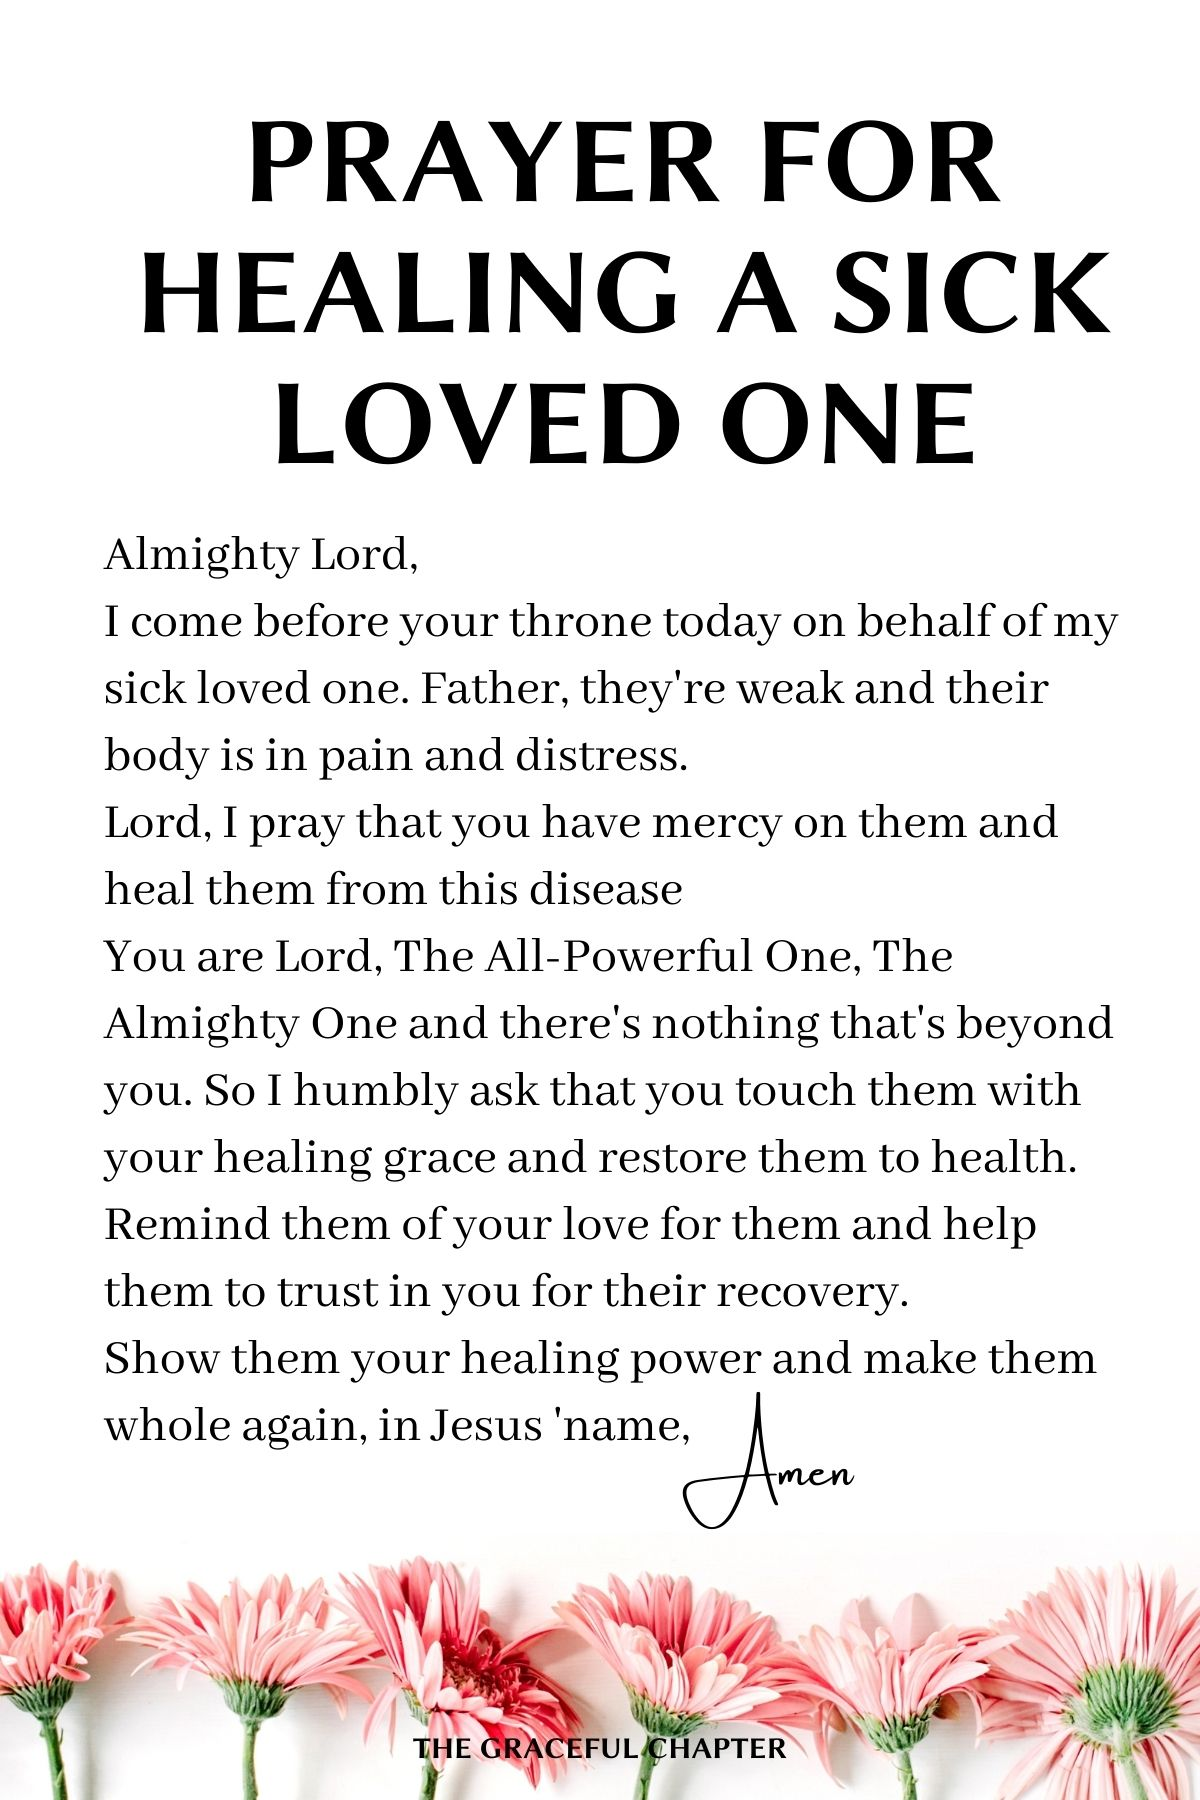 Prayers for healing a sick loved one